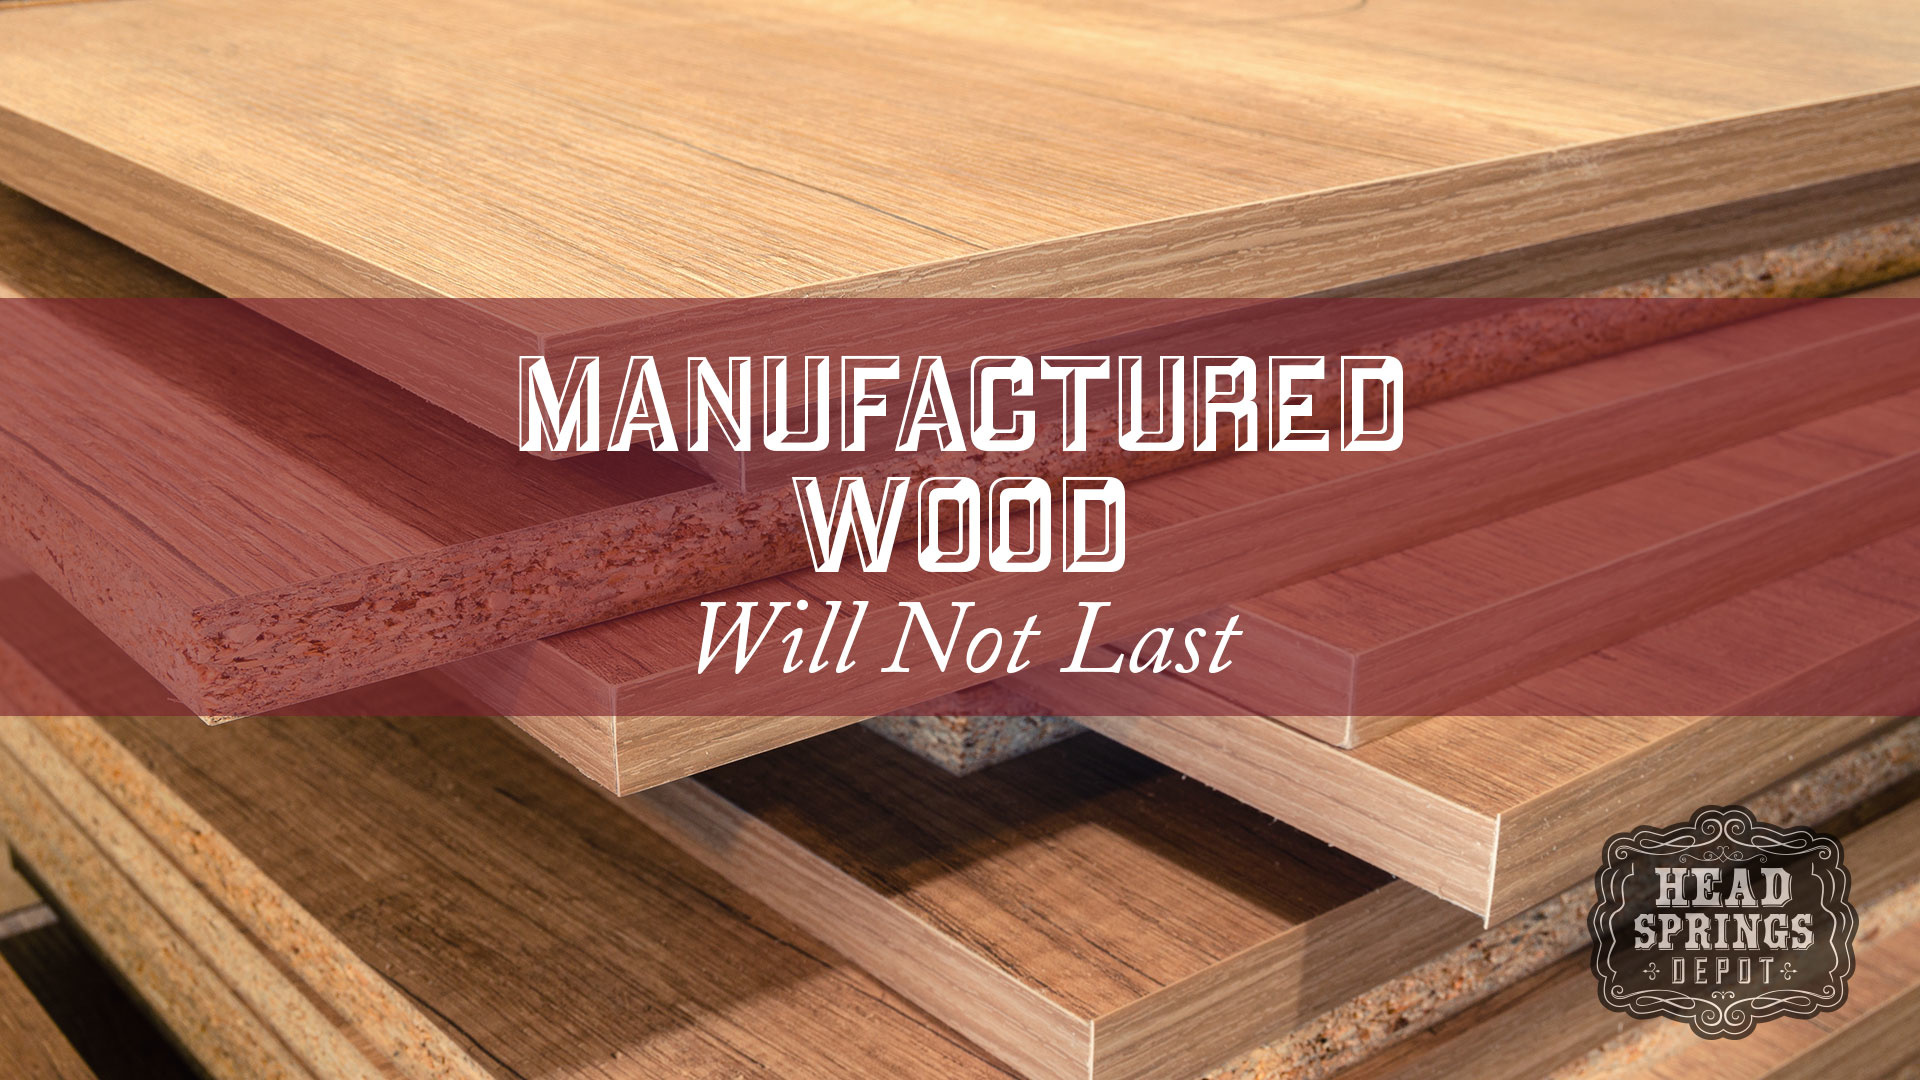 Manufactured Wood Will Not Last